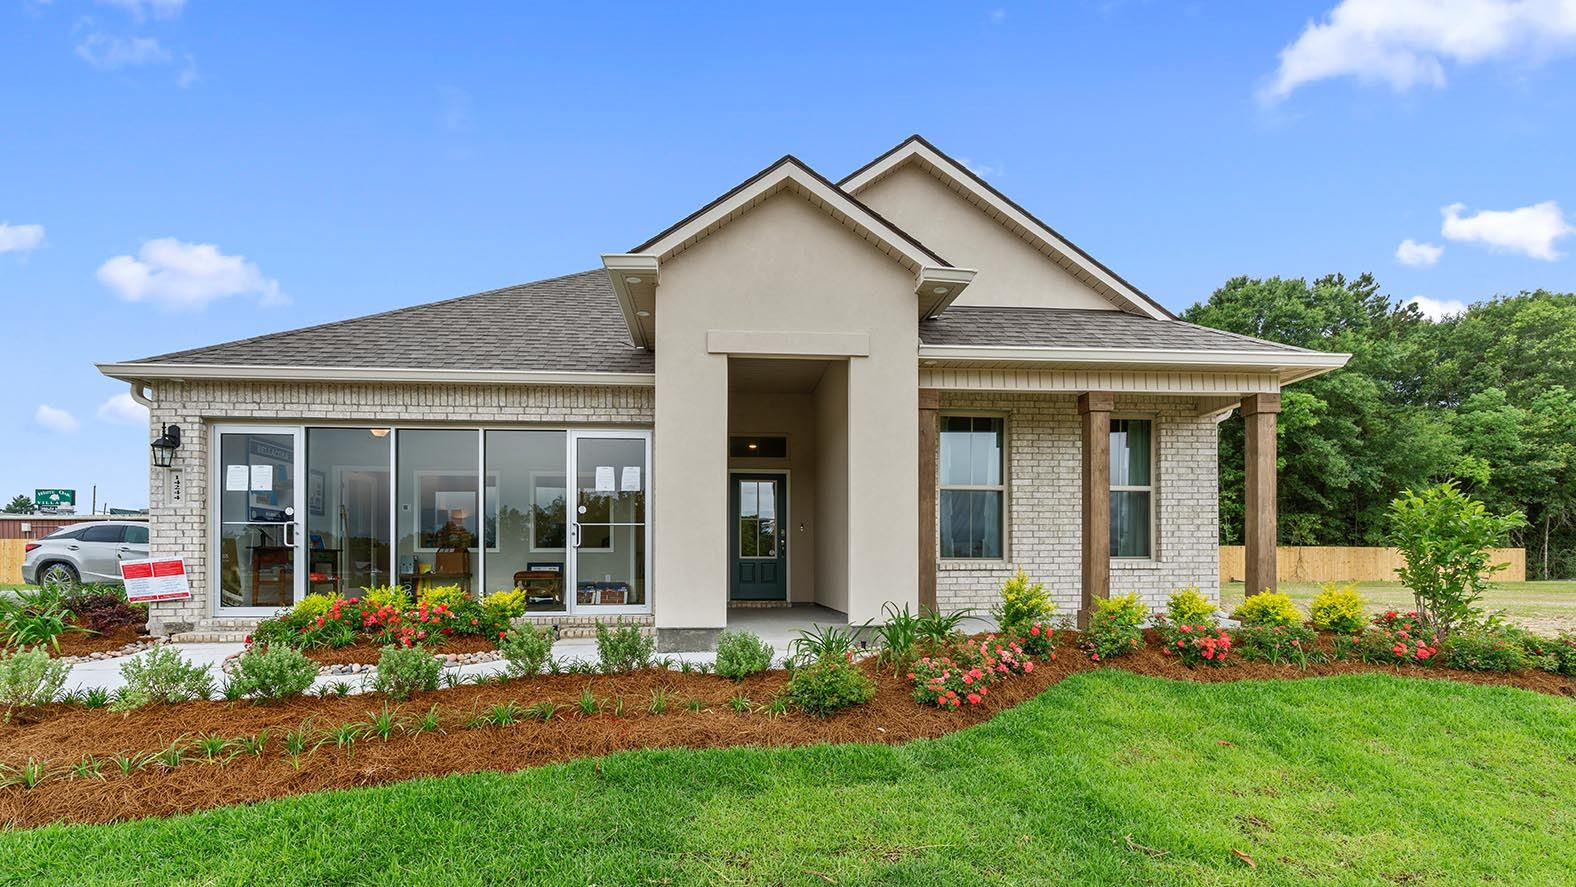 Bellacosa In Baton Rouge La Prices Plans Availability